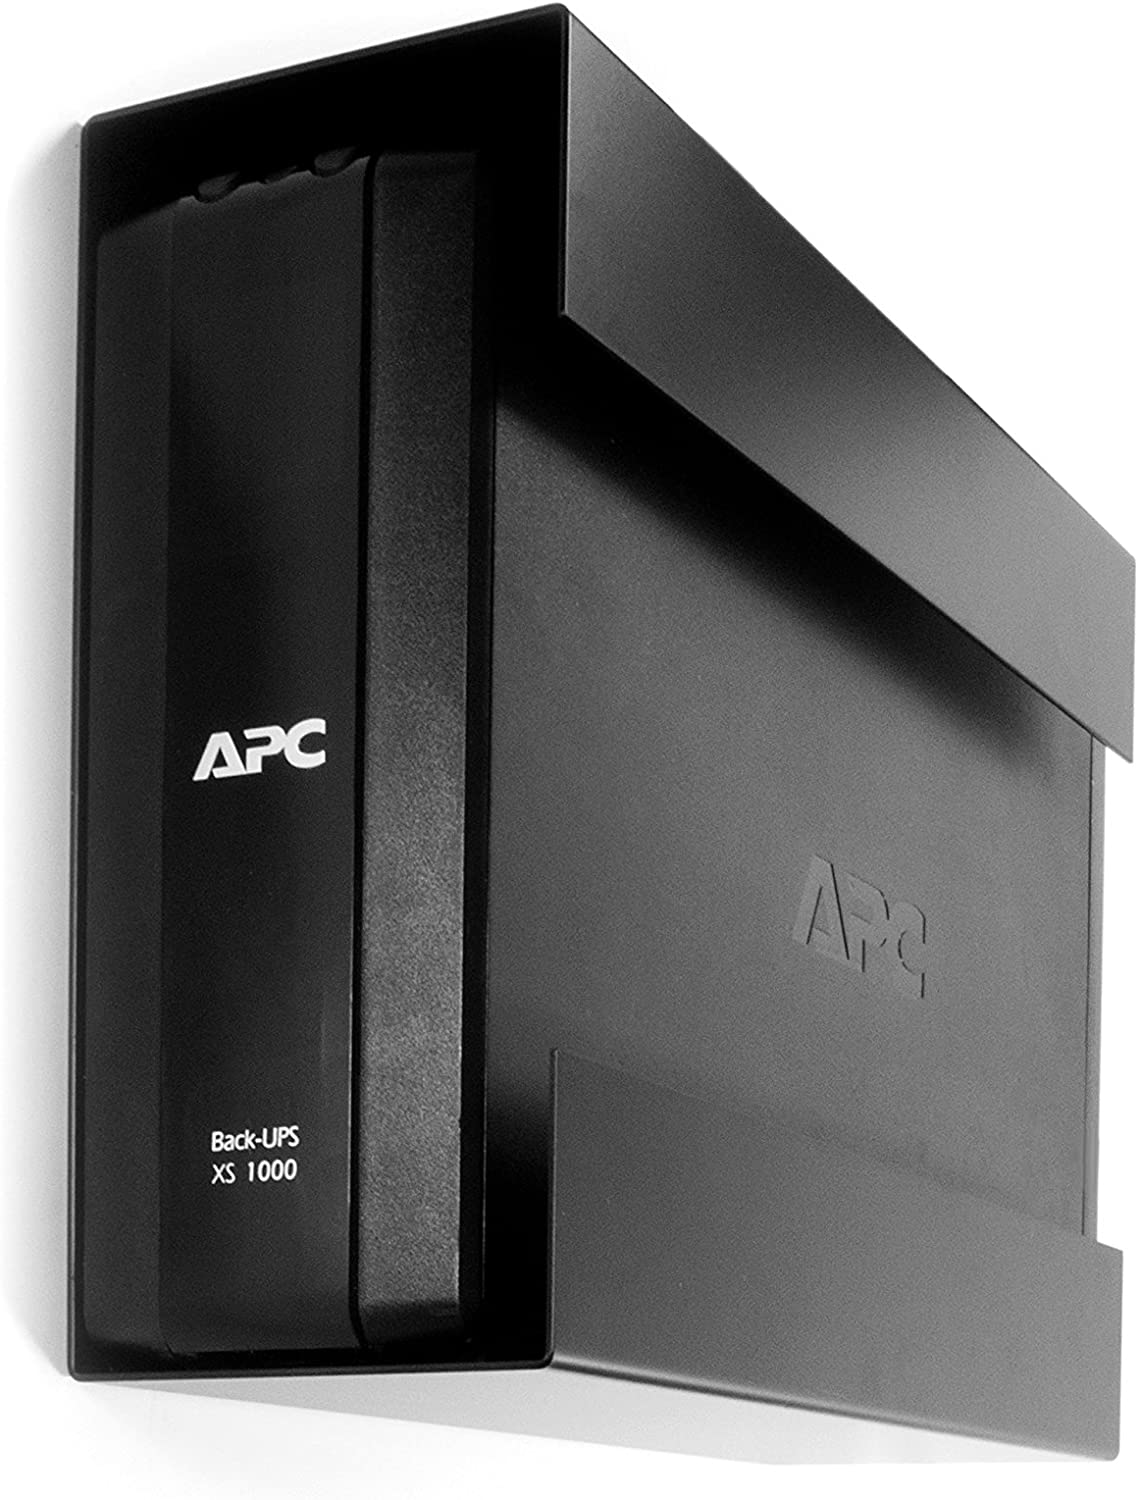 Oeveo UPS Mount 245-12.1H x 4.7W x 11D and More UPSM-245 Uninterruptible Power Supply UPS Mount for APC CyberPower